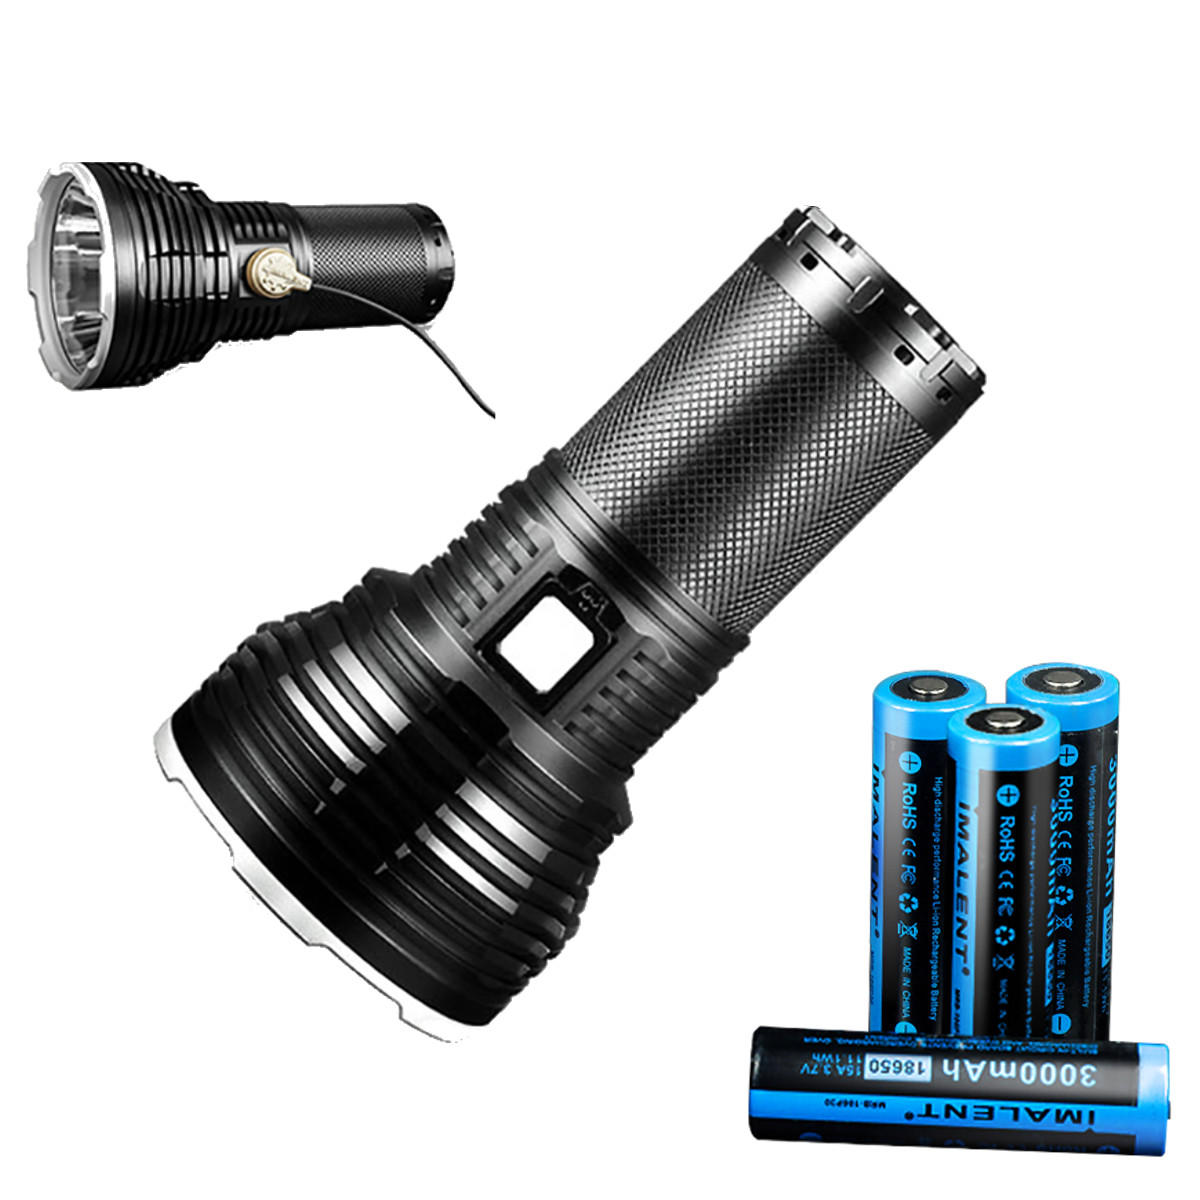 IMALENT RT70 KIT XHP70.2 5500LM 903m Super Bright Long-rang USB Magnetic Charging Intelligent Temperature Control LED Flashlight Suit wIth 4x 18650